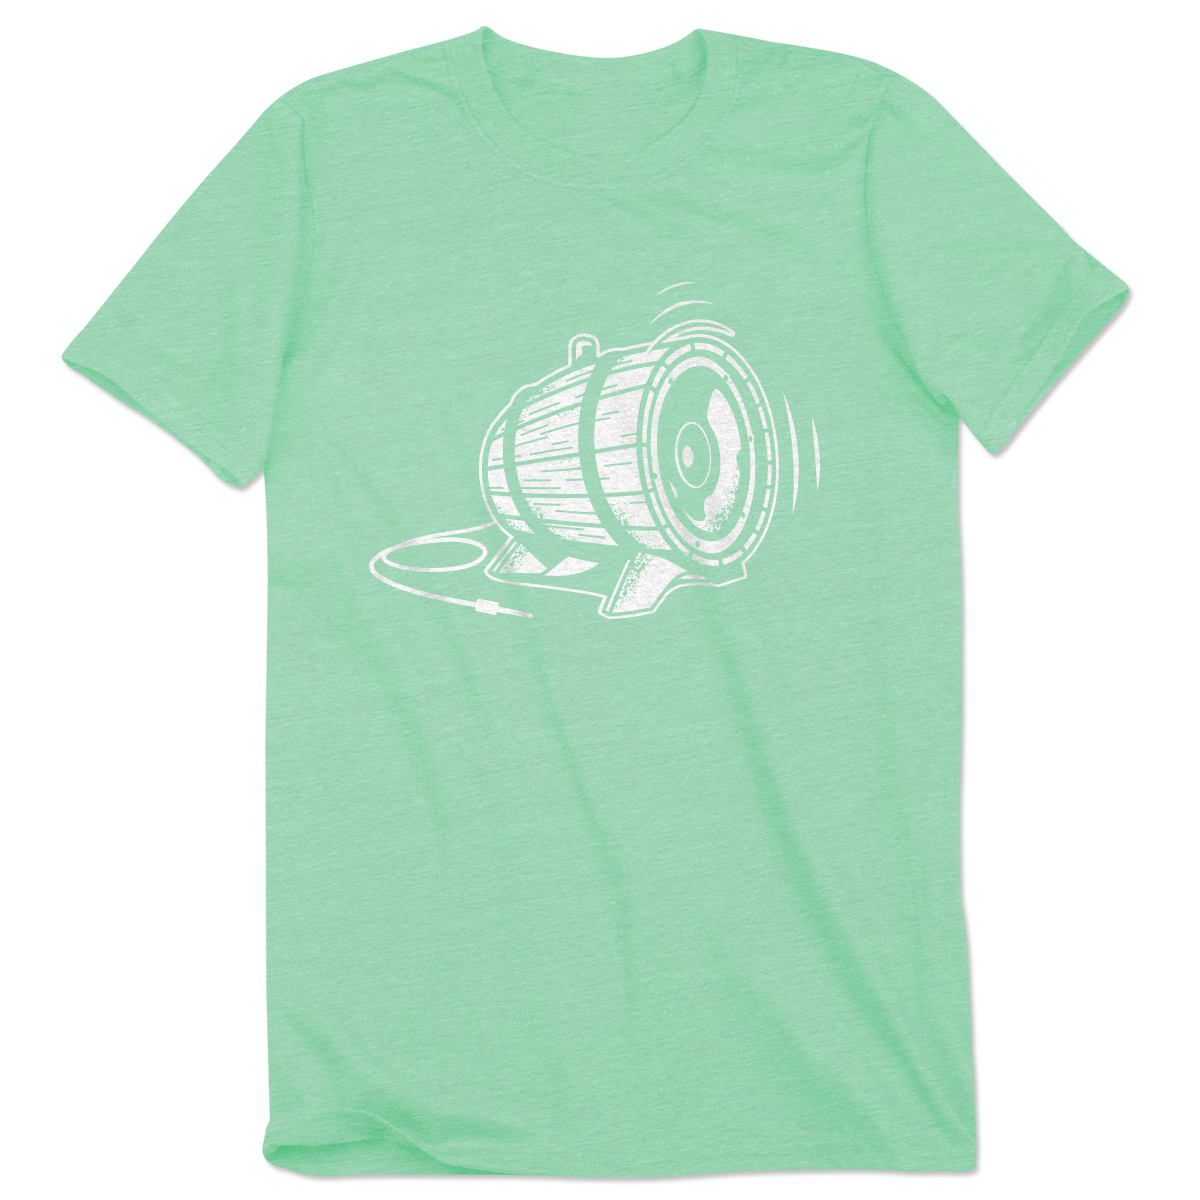 Bottle Rock Men's 2015 Festival Tee - Green